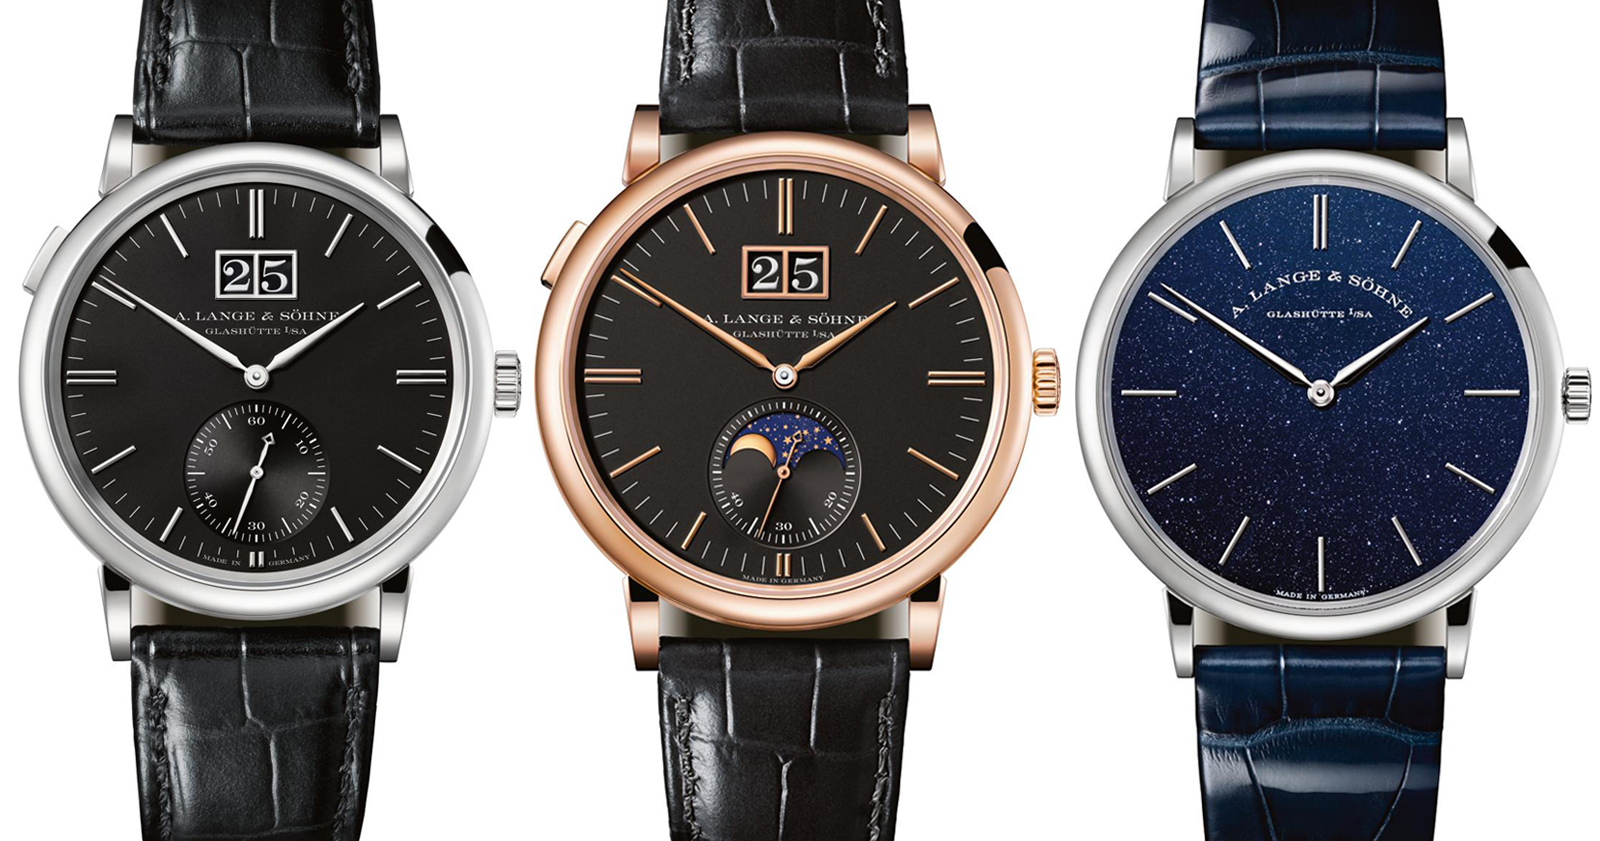 Sihh 2018 A Lange Sohne Unveils Saxonia Watches With Entry